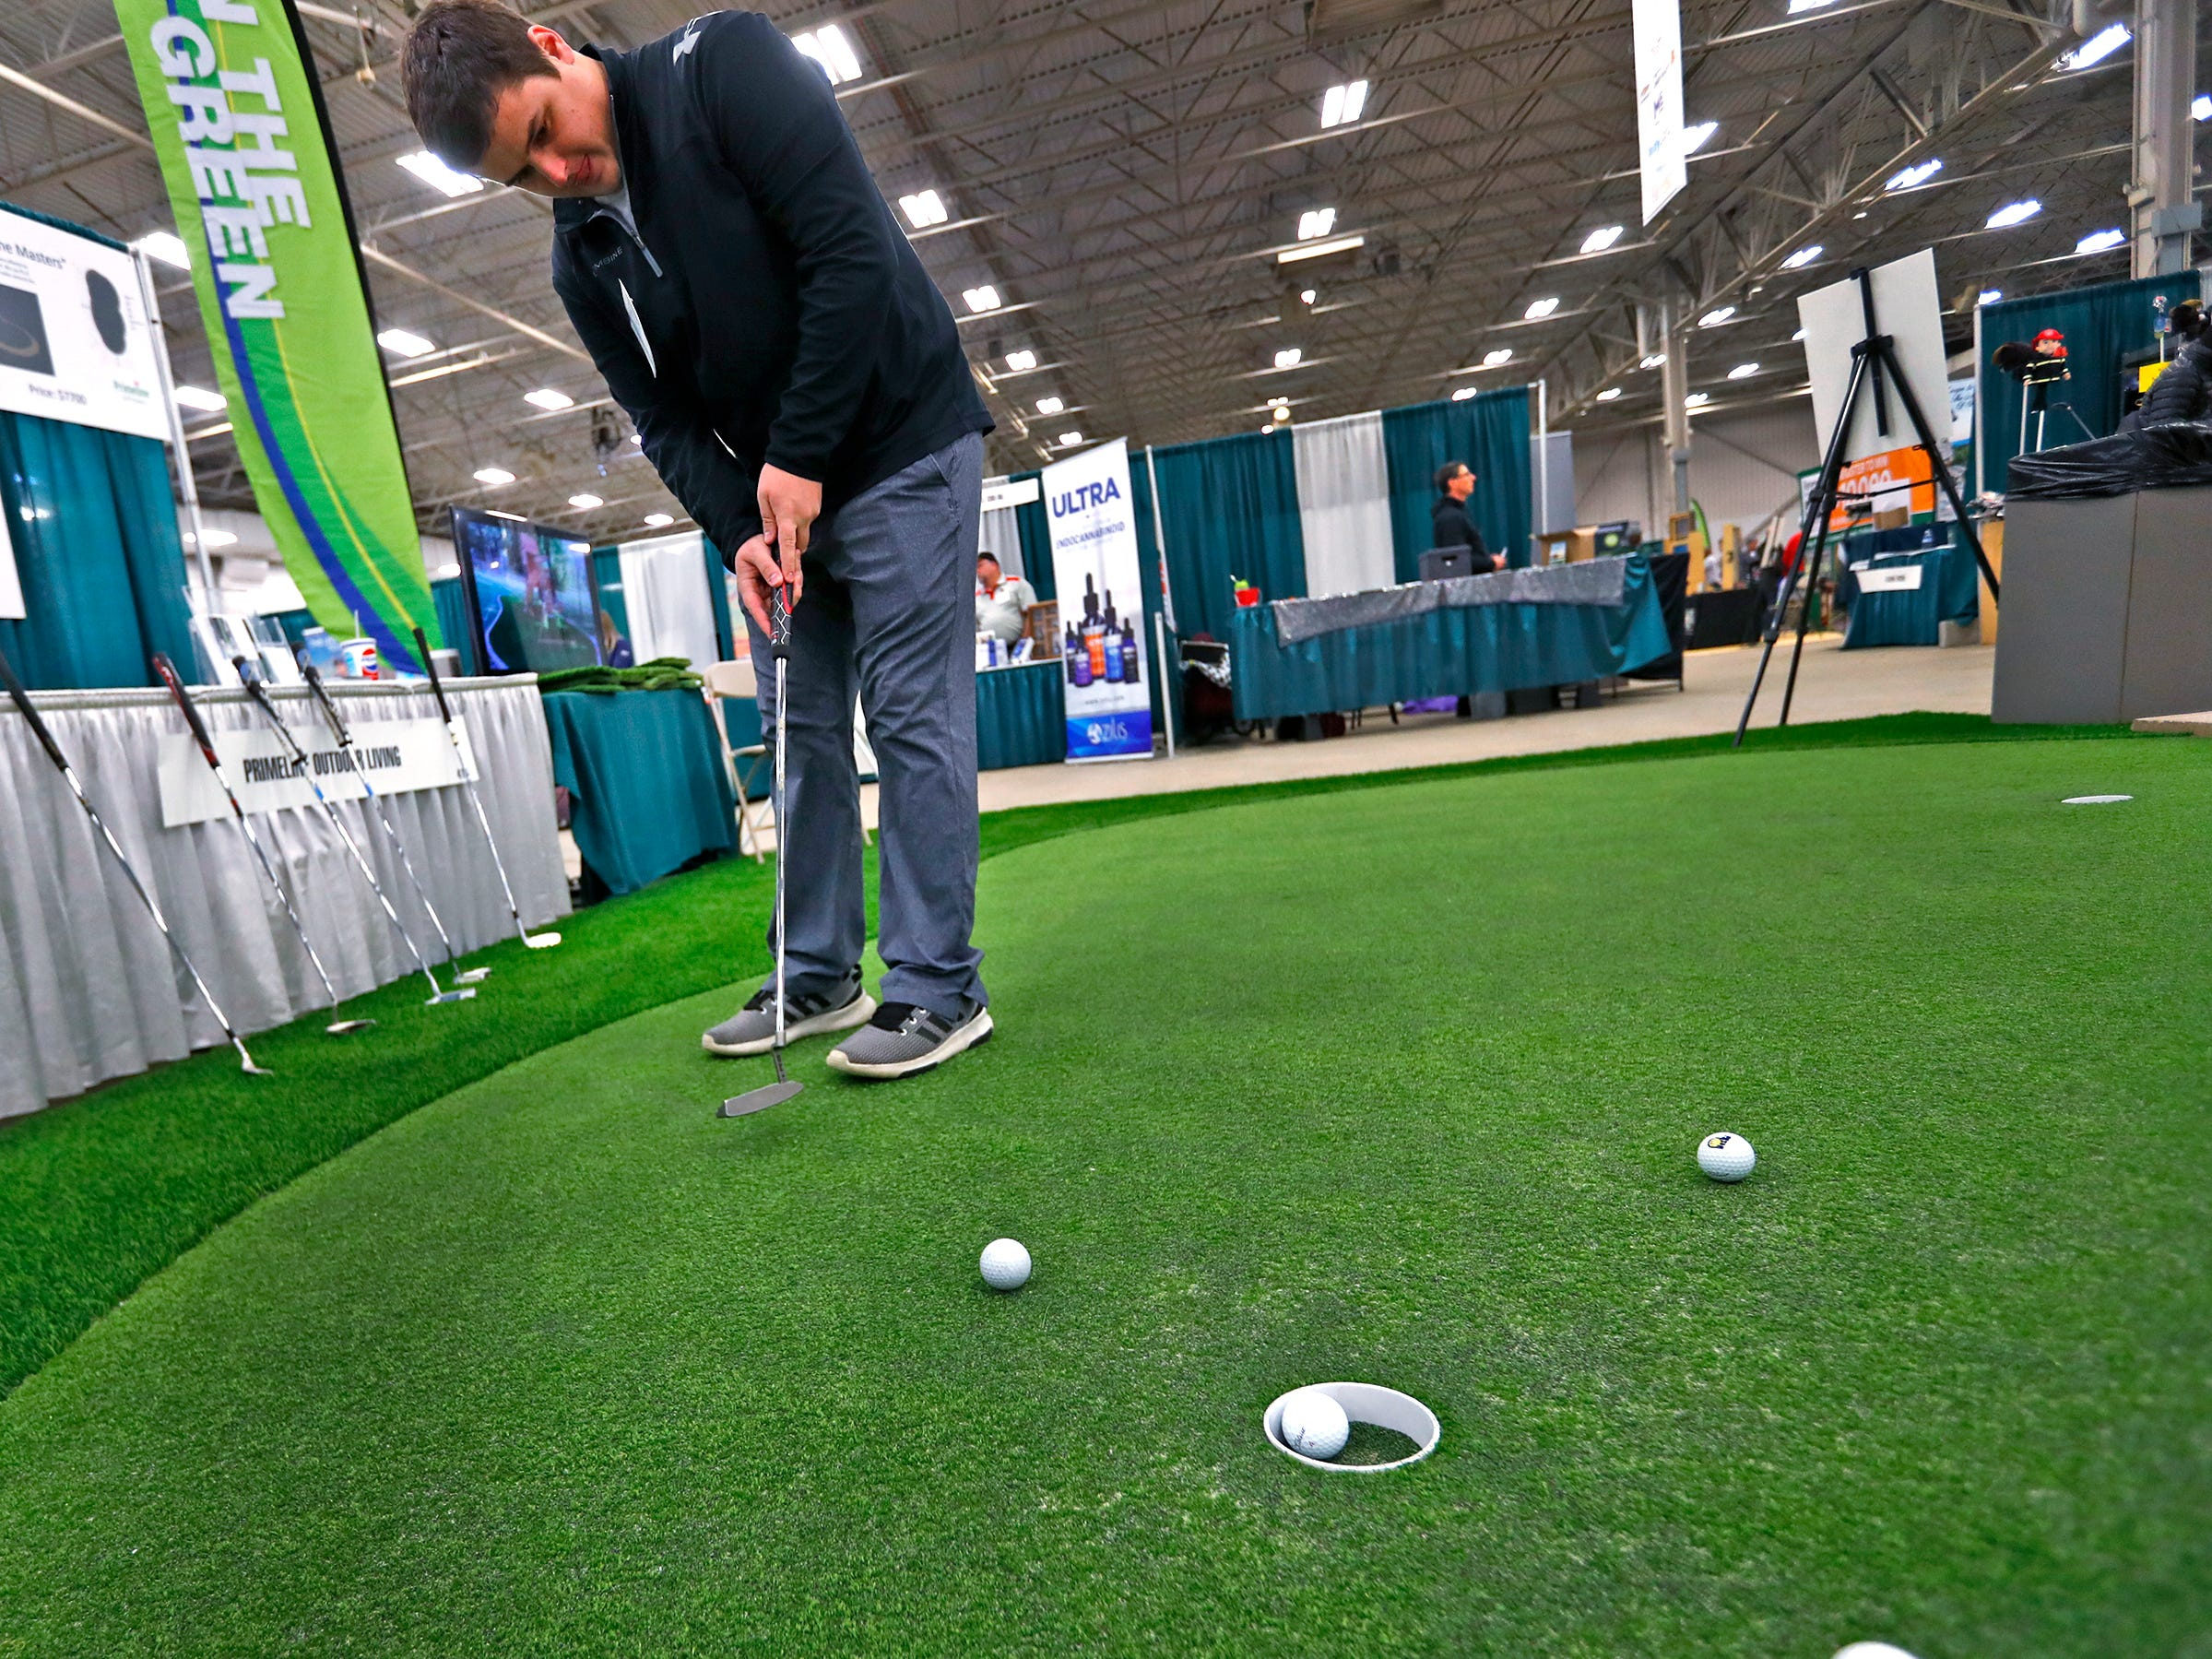 Joe Buhle, with Primeline Outdoor Living, sinks putts in between helping customers during the Indy Golf Expo at the Indiana State Fairgrounds, Sunday, Jan. 20, 2019.